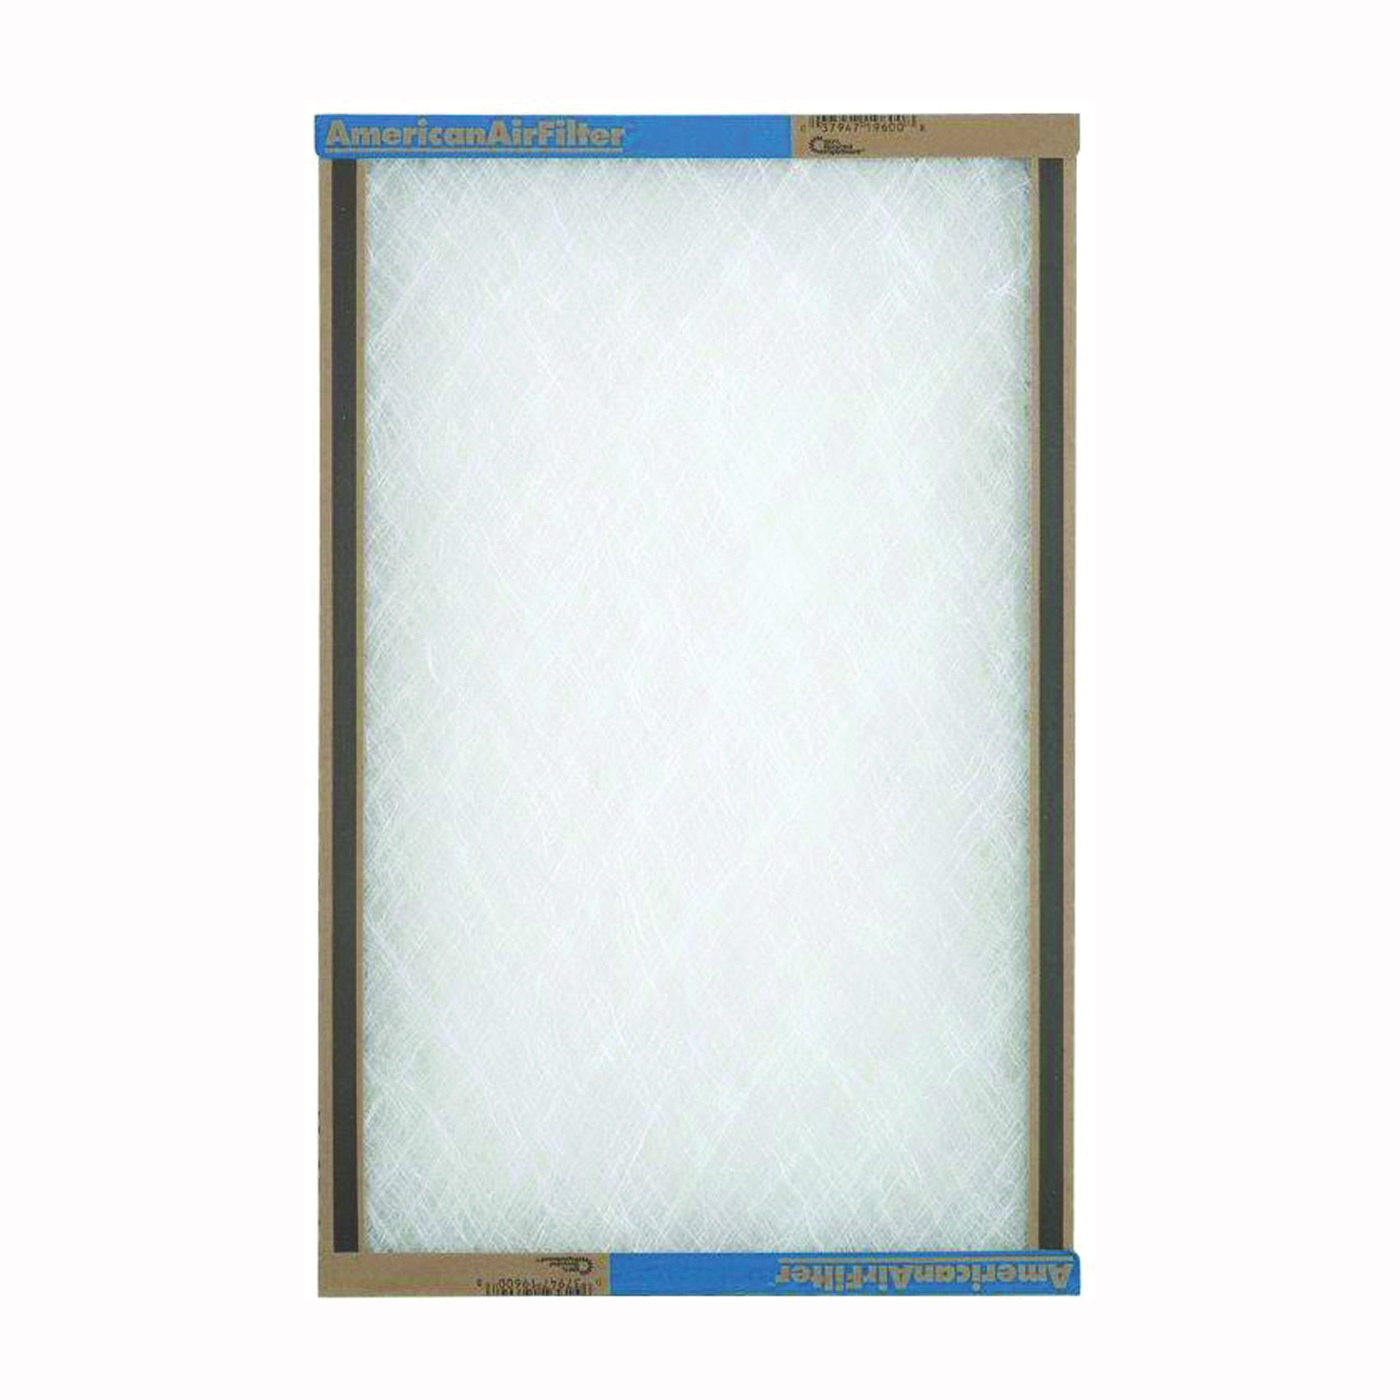 Picture of AAF 220-700-051 Panel Filter, 20 in L, 20 in W, Chipboard Frame